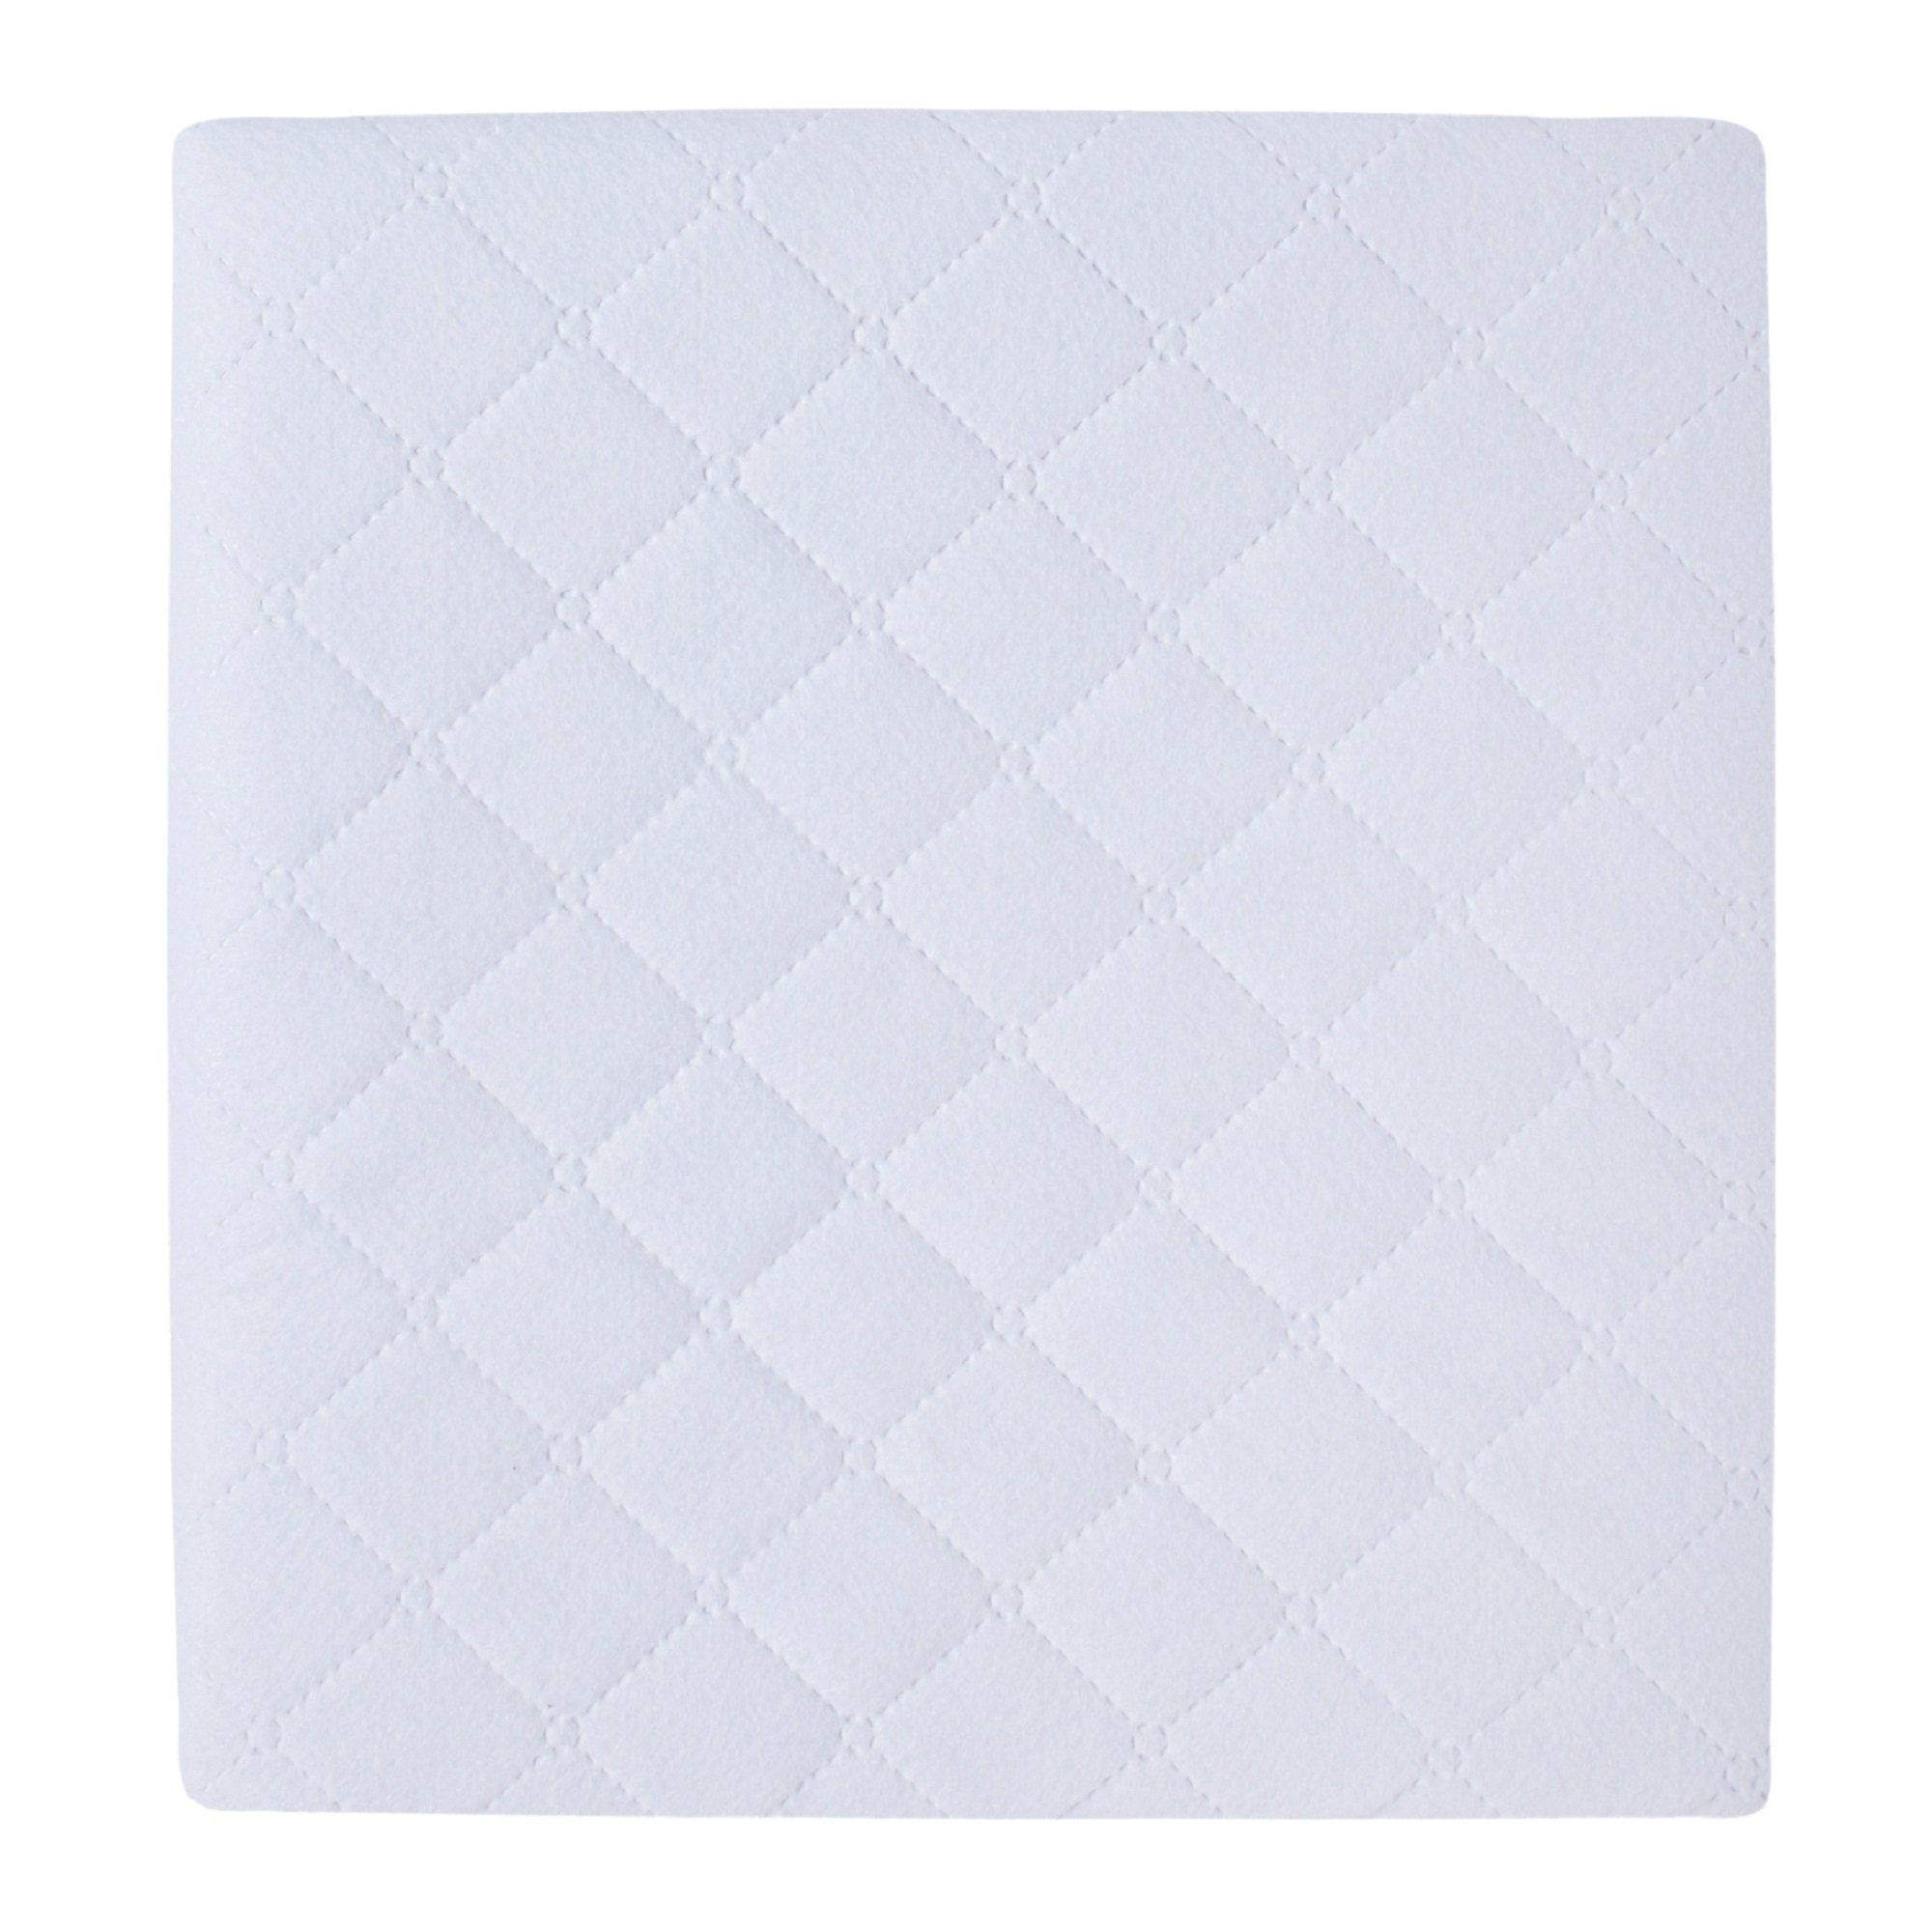 Carter's 2 Piece Protector Pad, Solid White, One Size by Carter's